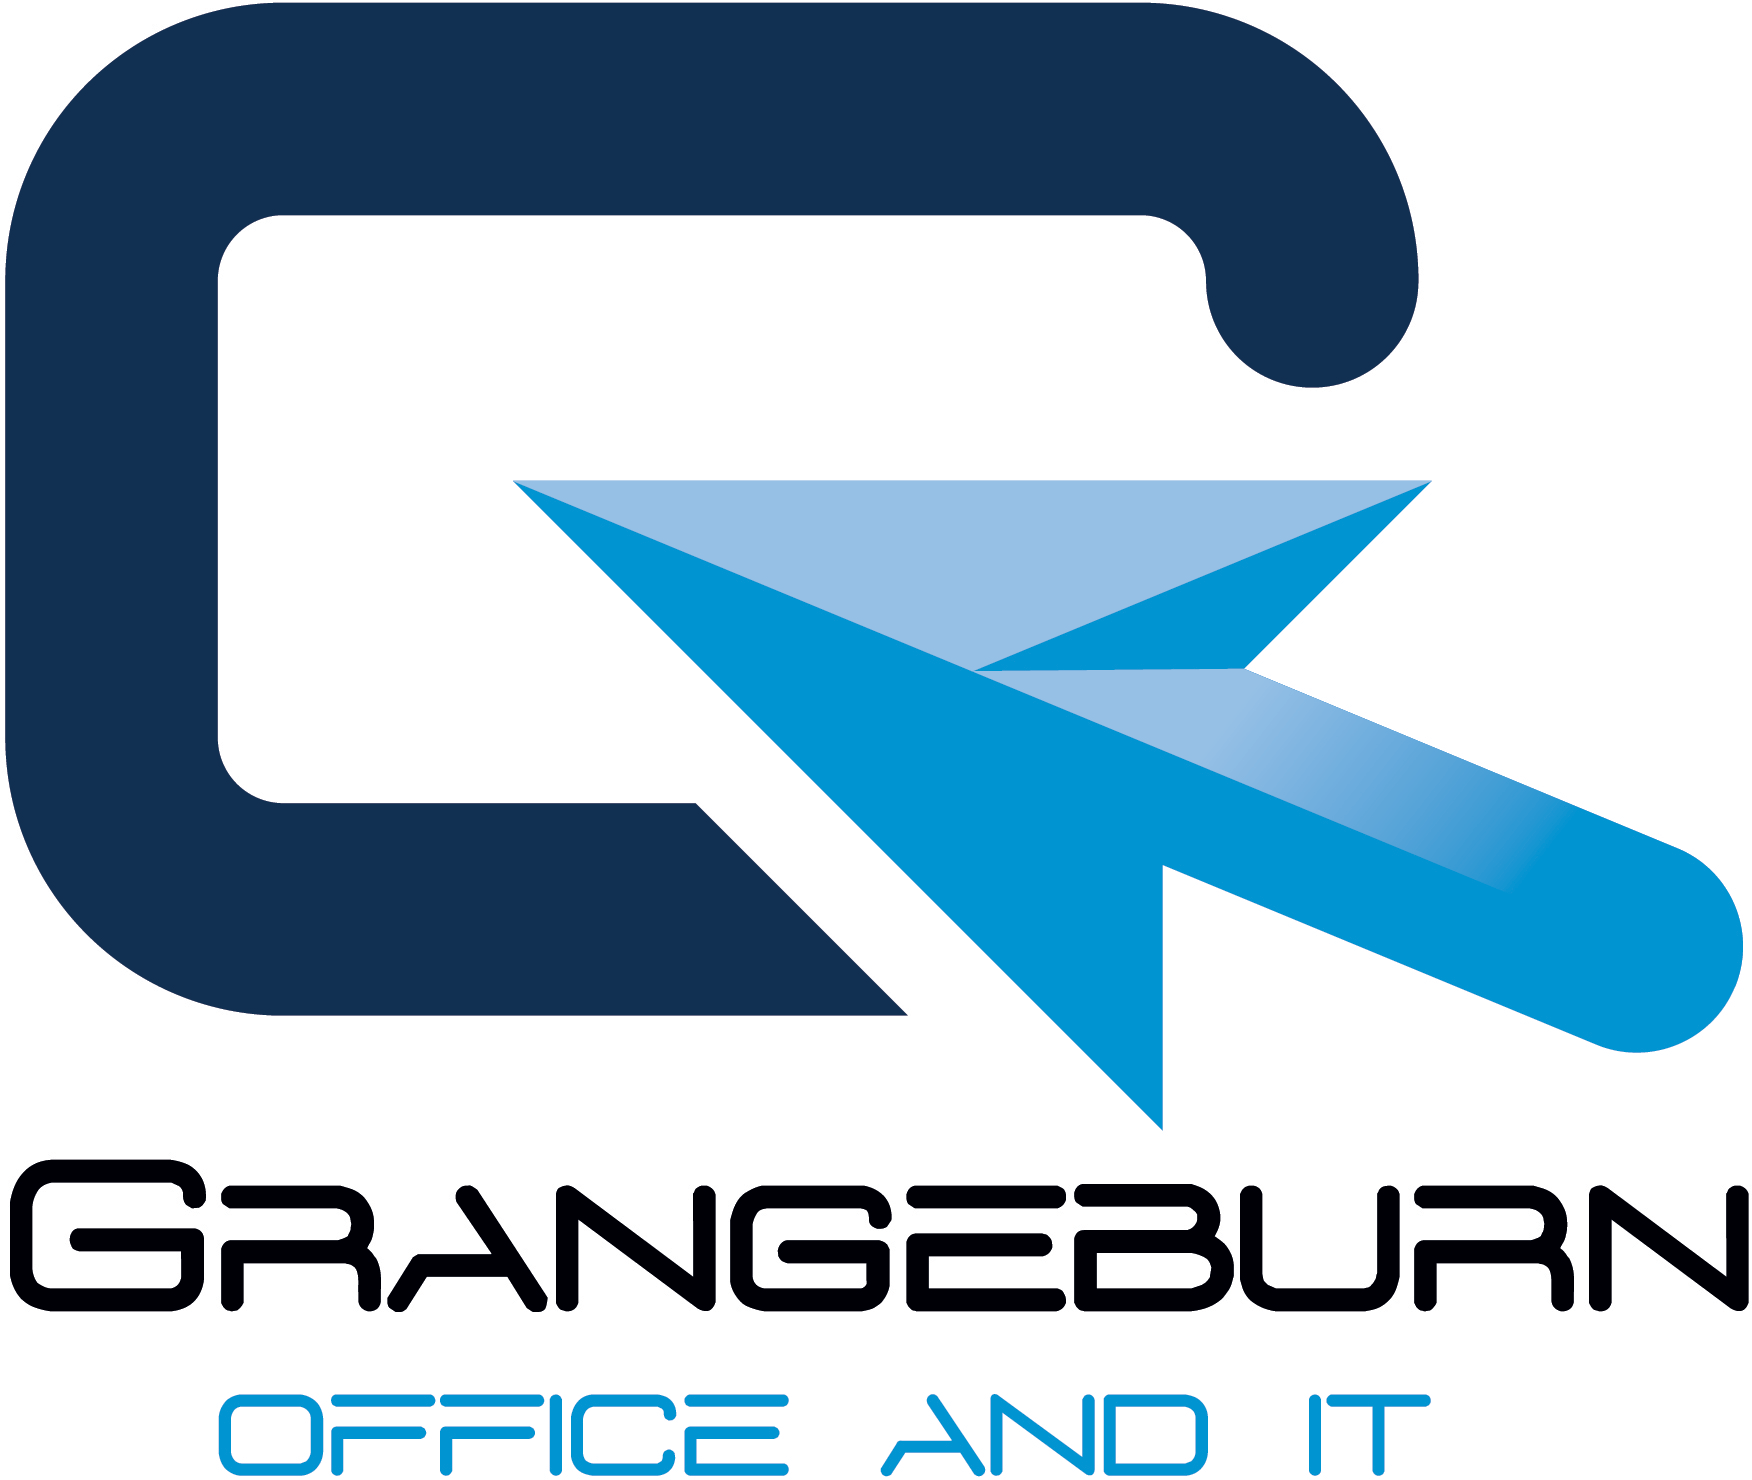 Grangeburn Office and IT